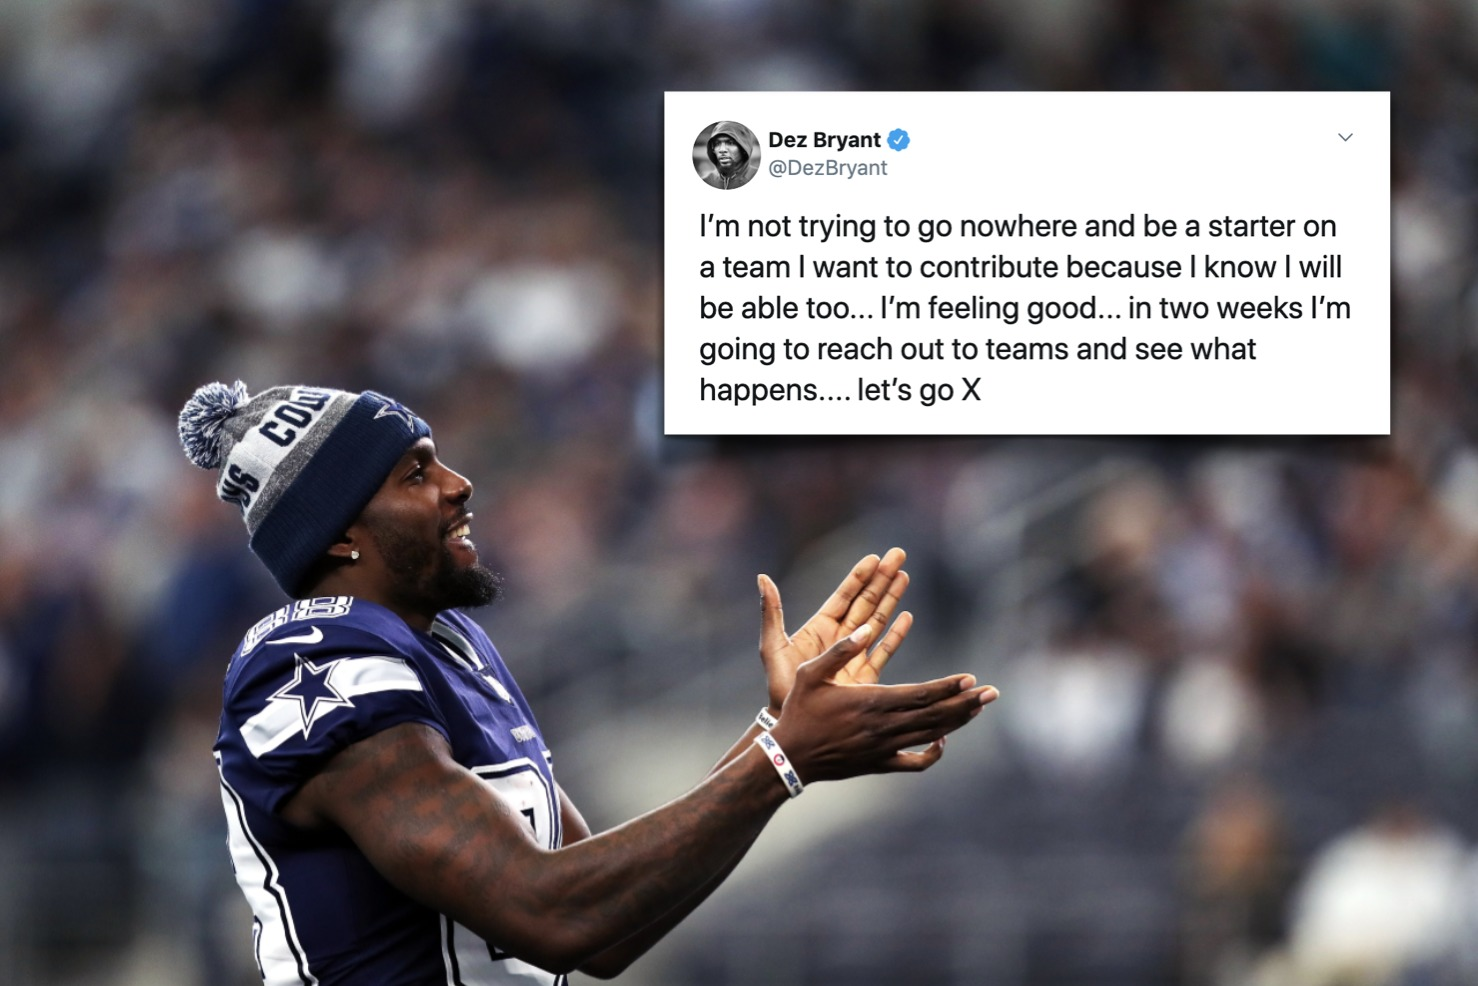 Ex Cowboys Wr Dez Bryant Eyeing Nfl Return Plans To Contact